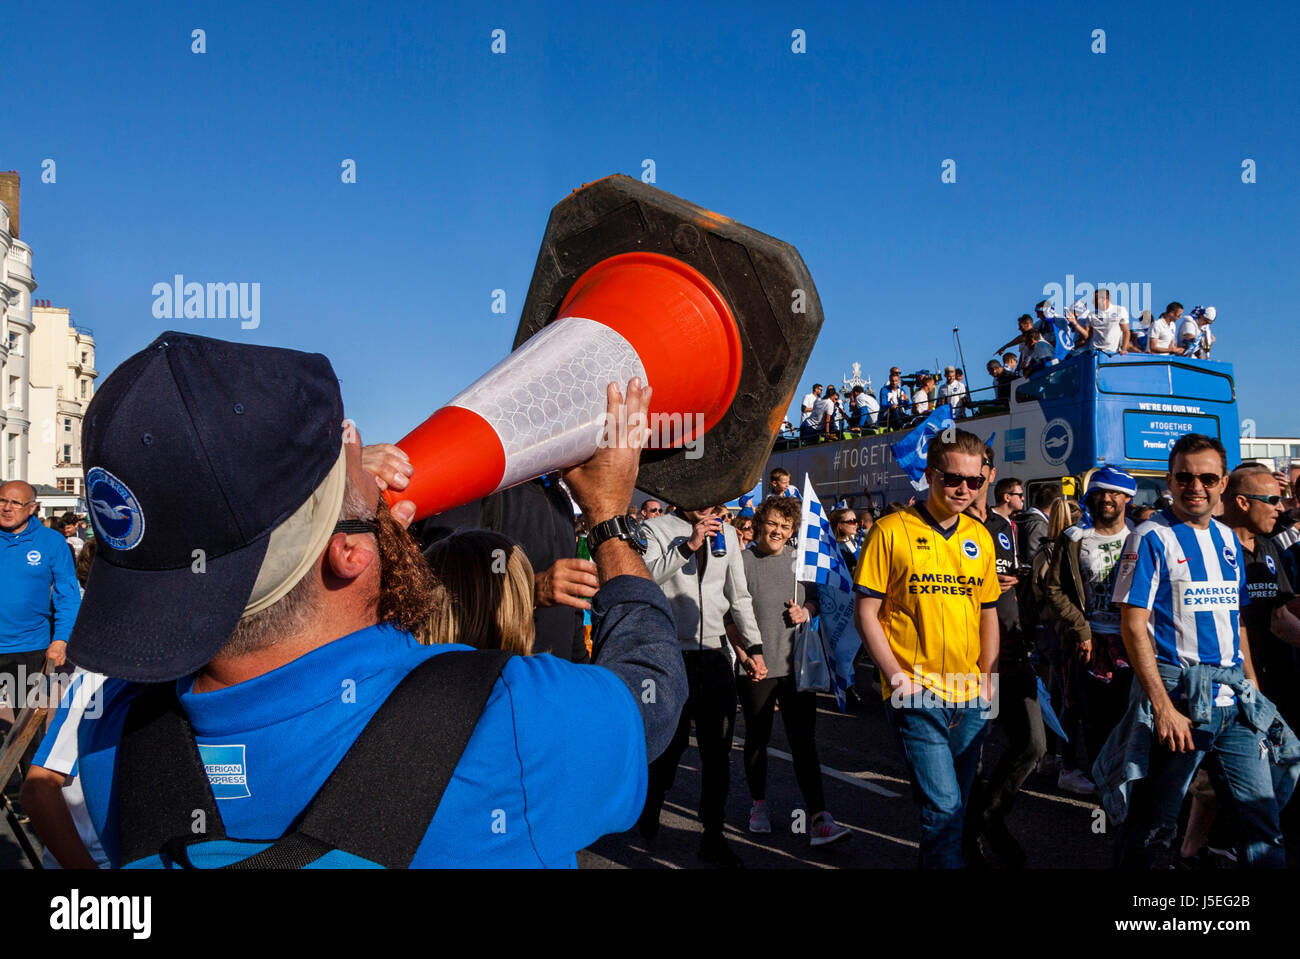 A Brighton and Hove Albion Football Fan Shouts Into A Traffic Cone As The The Team Bus Passes During The Club's - Stock Image